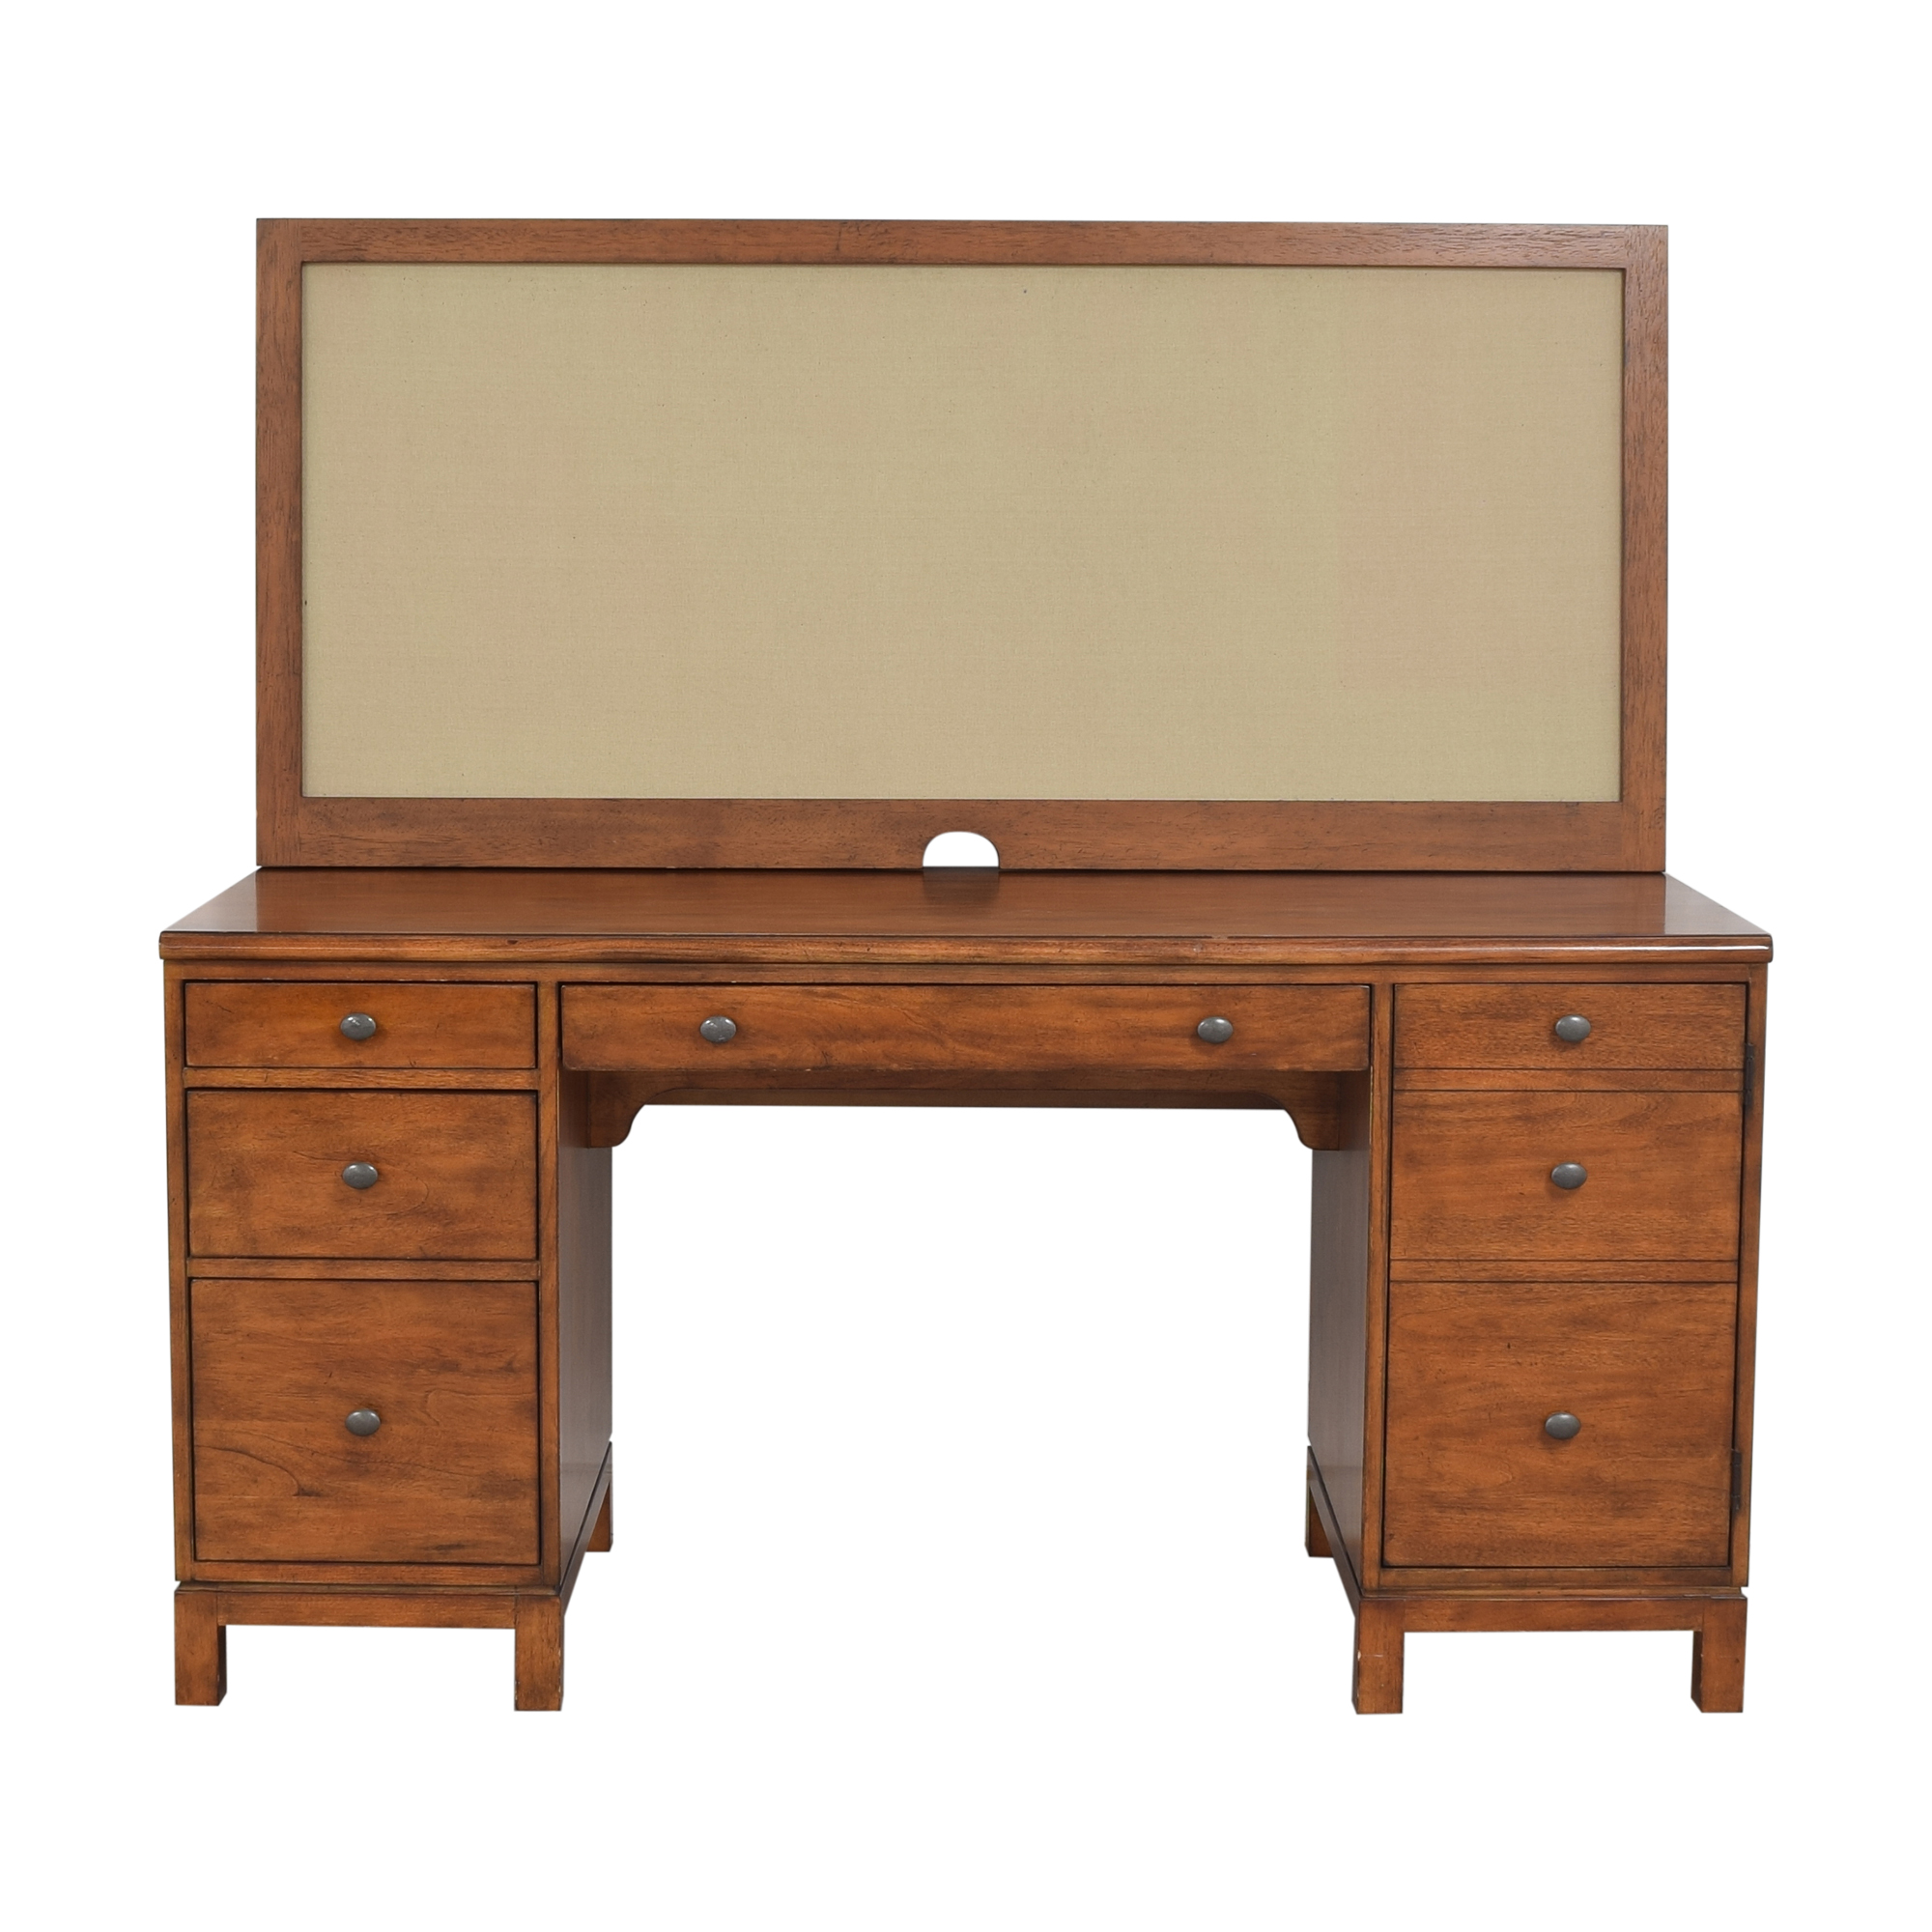 Ethan Allen Hawke Double Pedestal Desk with Bulletin Board / Tables